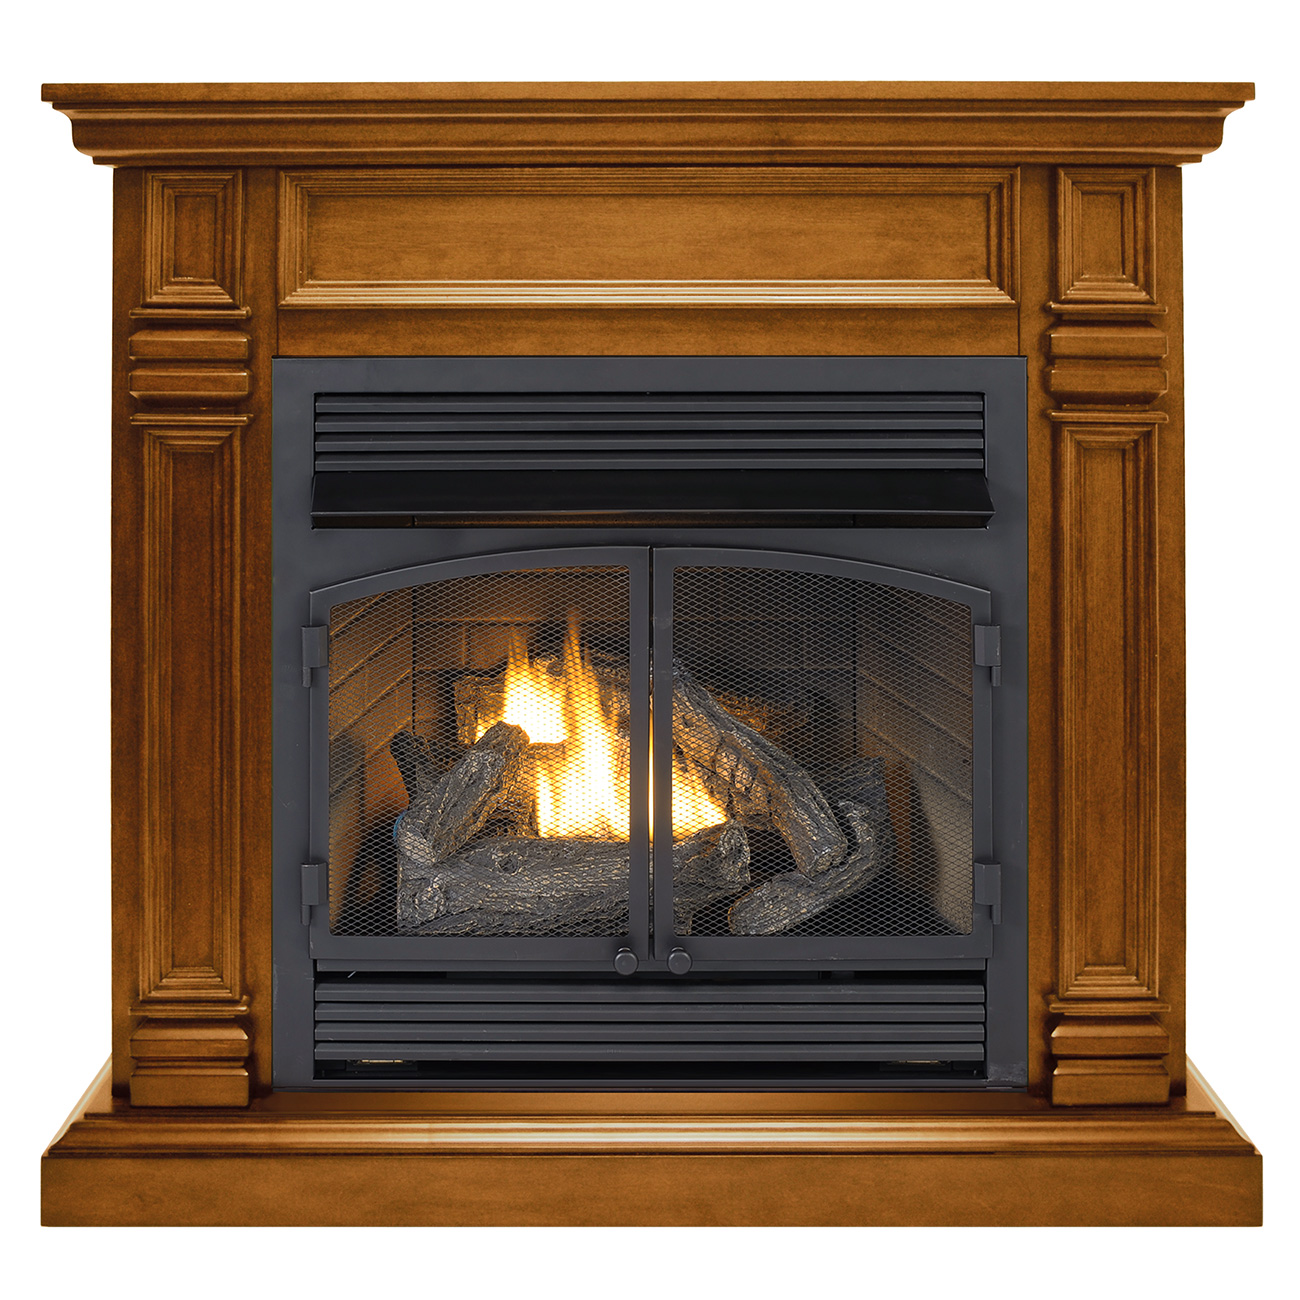 ventless fireplace system dual fuel technology apple spice finish with remote 32 000 btu. Black Bedroom Furniture Sets. Home Design Ideas